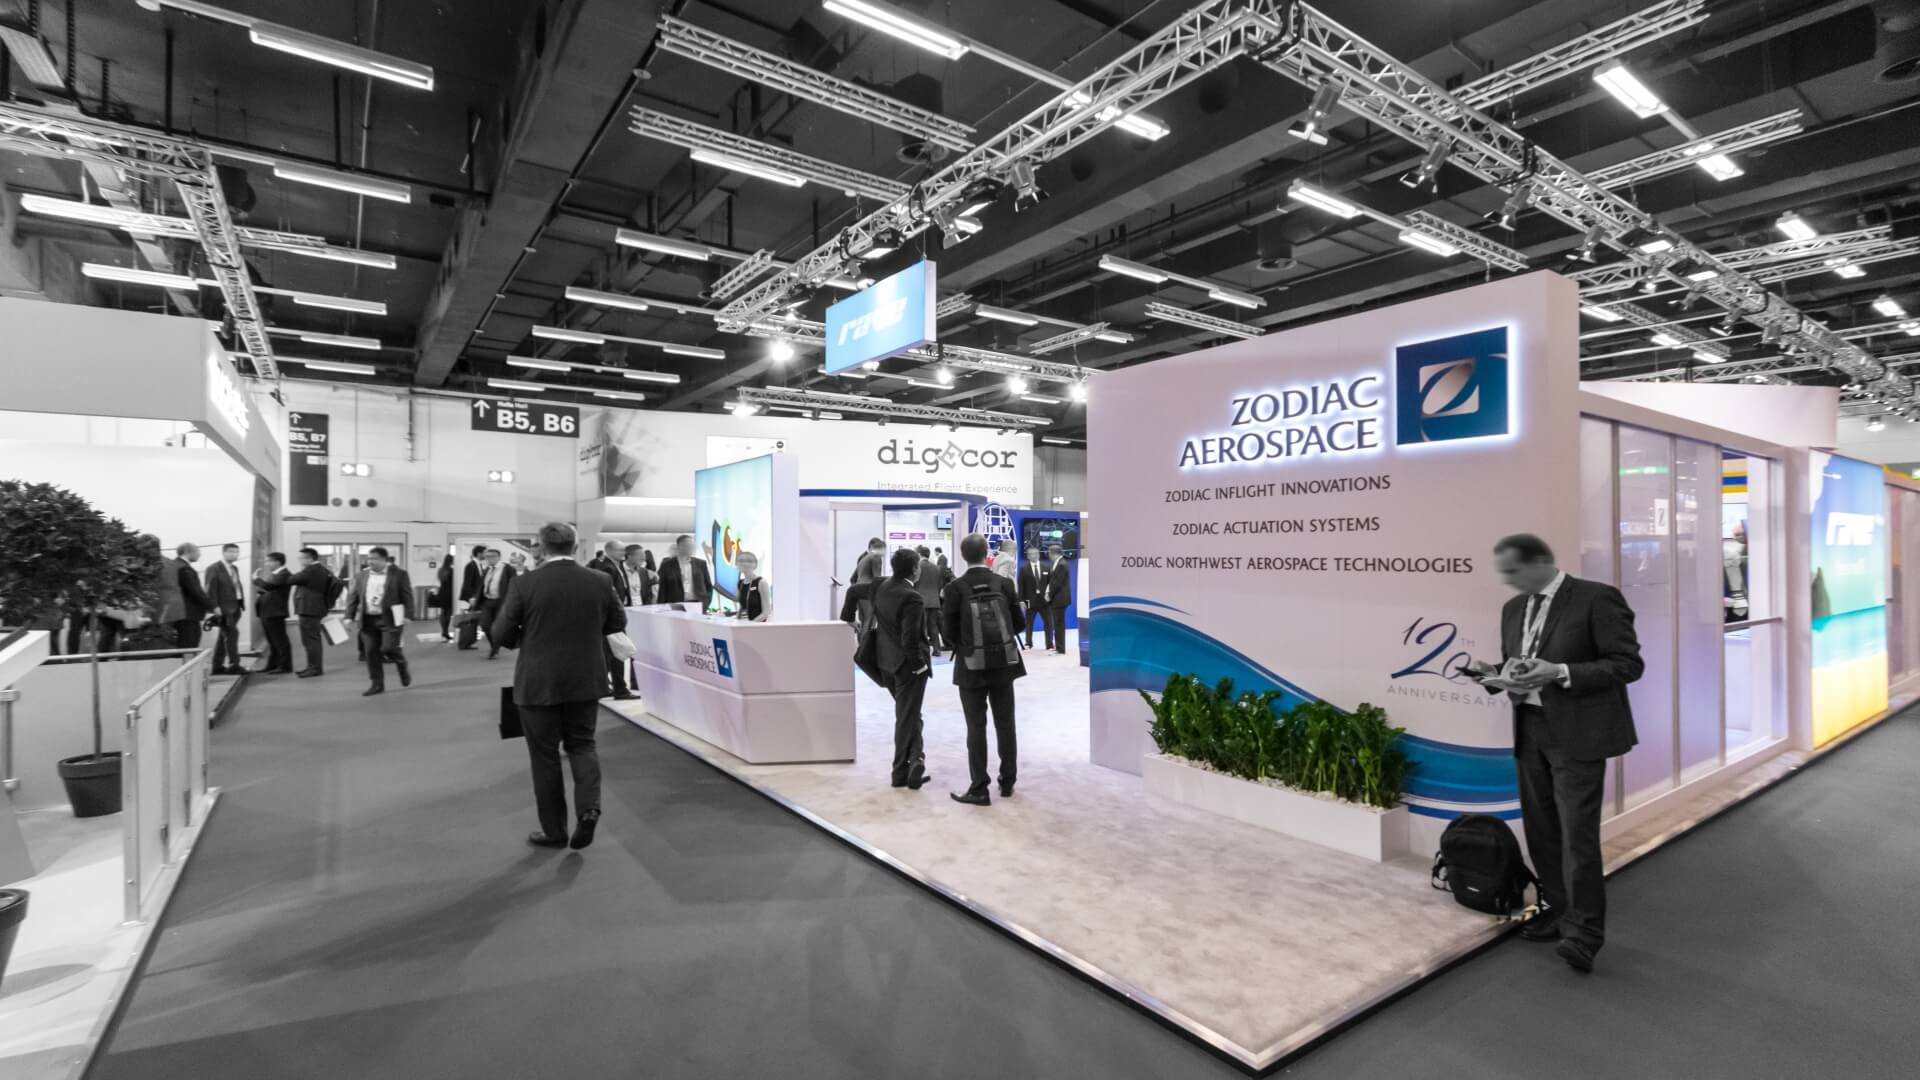 Zodiac<br>348 m²<br>Aircraft Interiors Expo